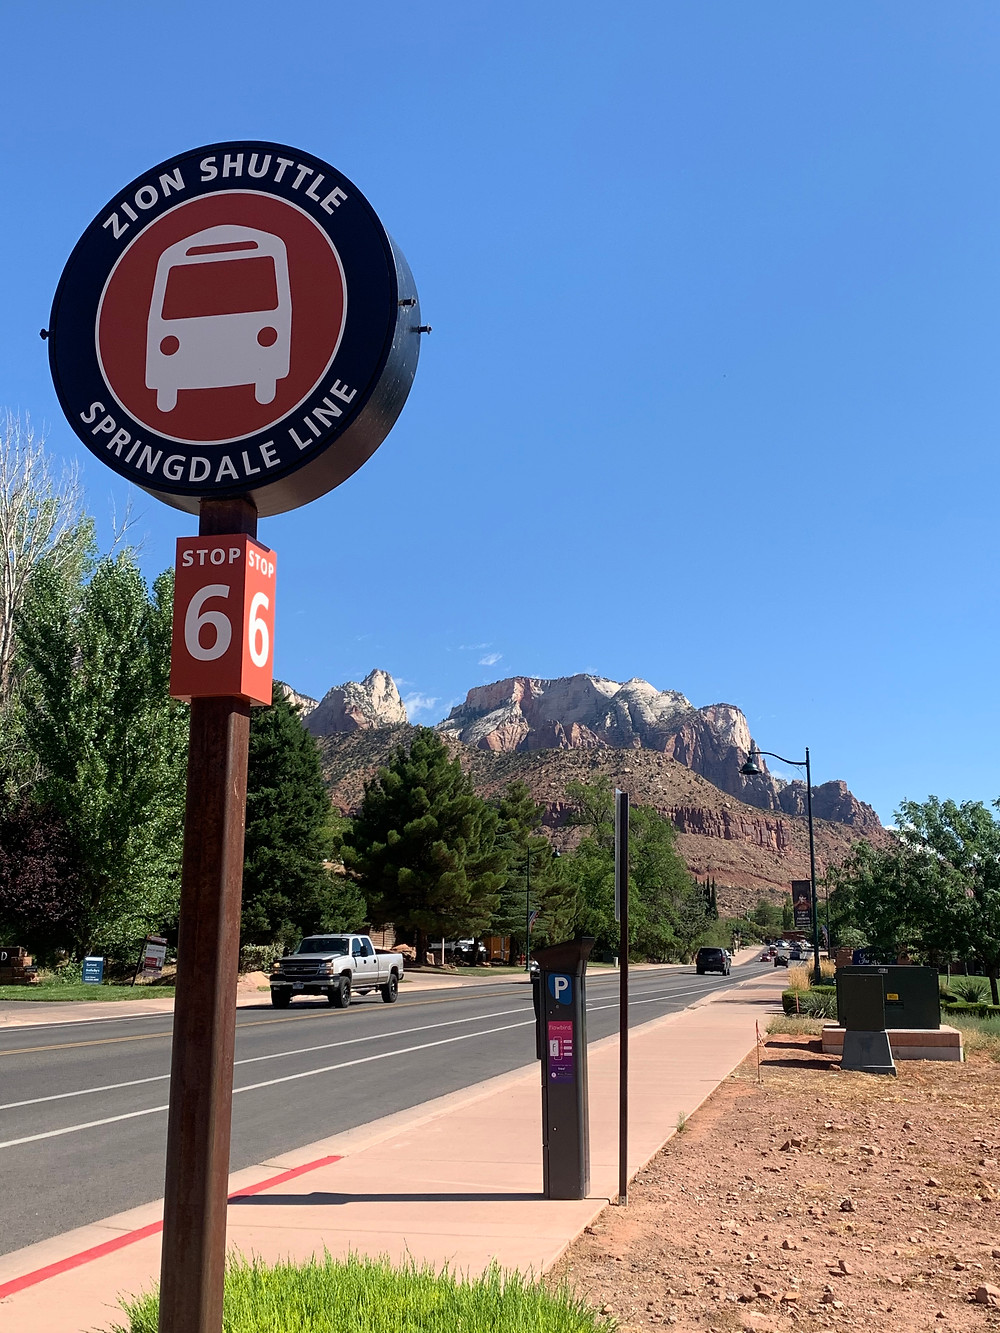 Stop 6 Sign for Zion Shuttle